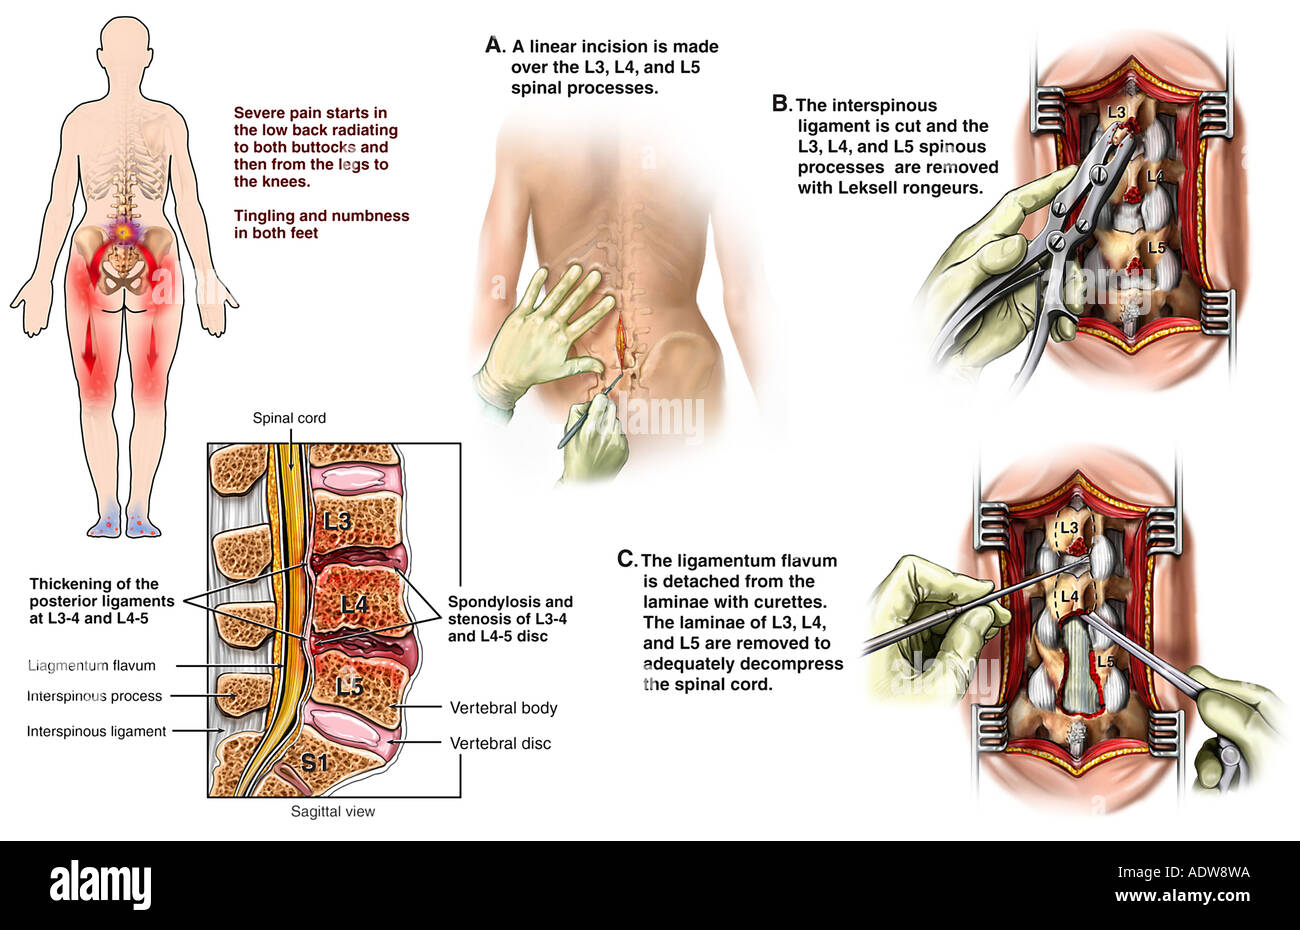 Lumbar Spinal Stenosis with Subsequent Detachment of